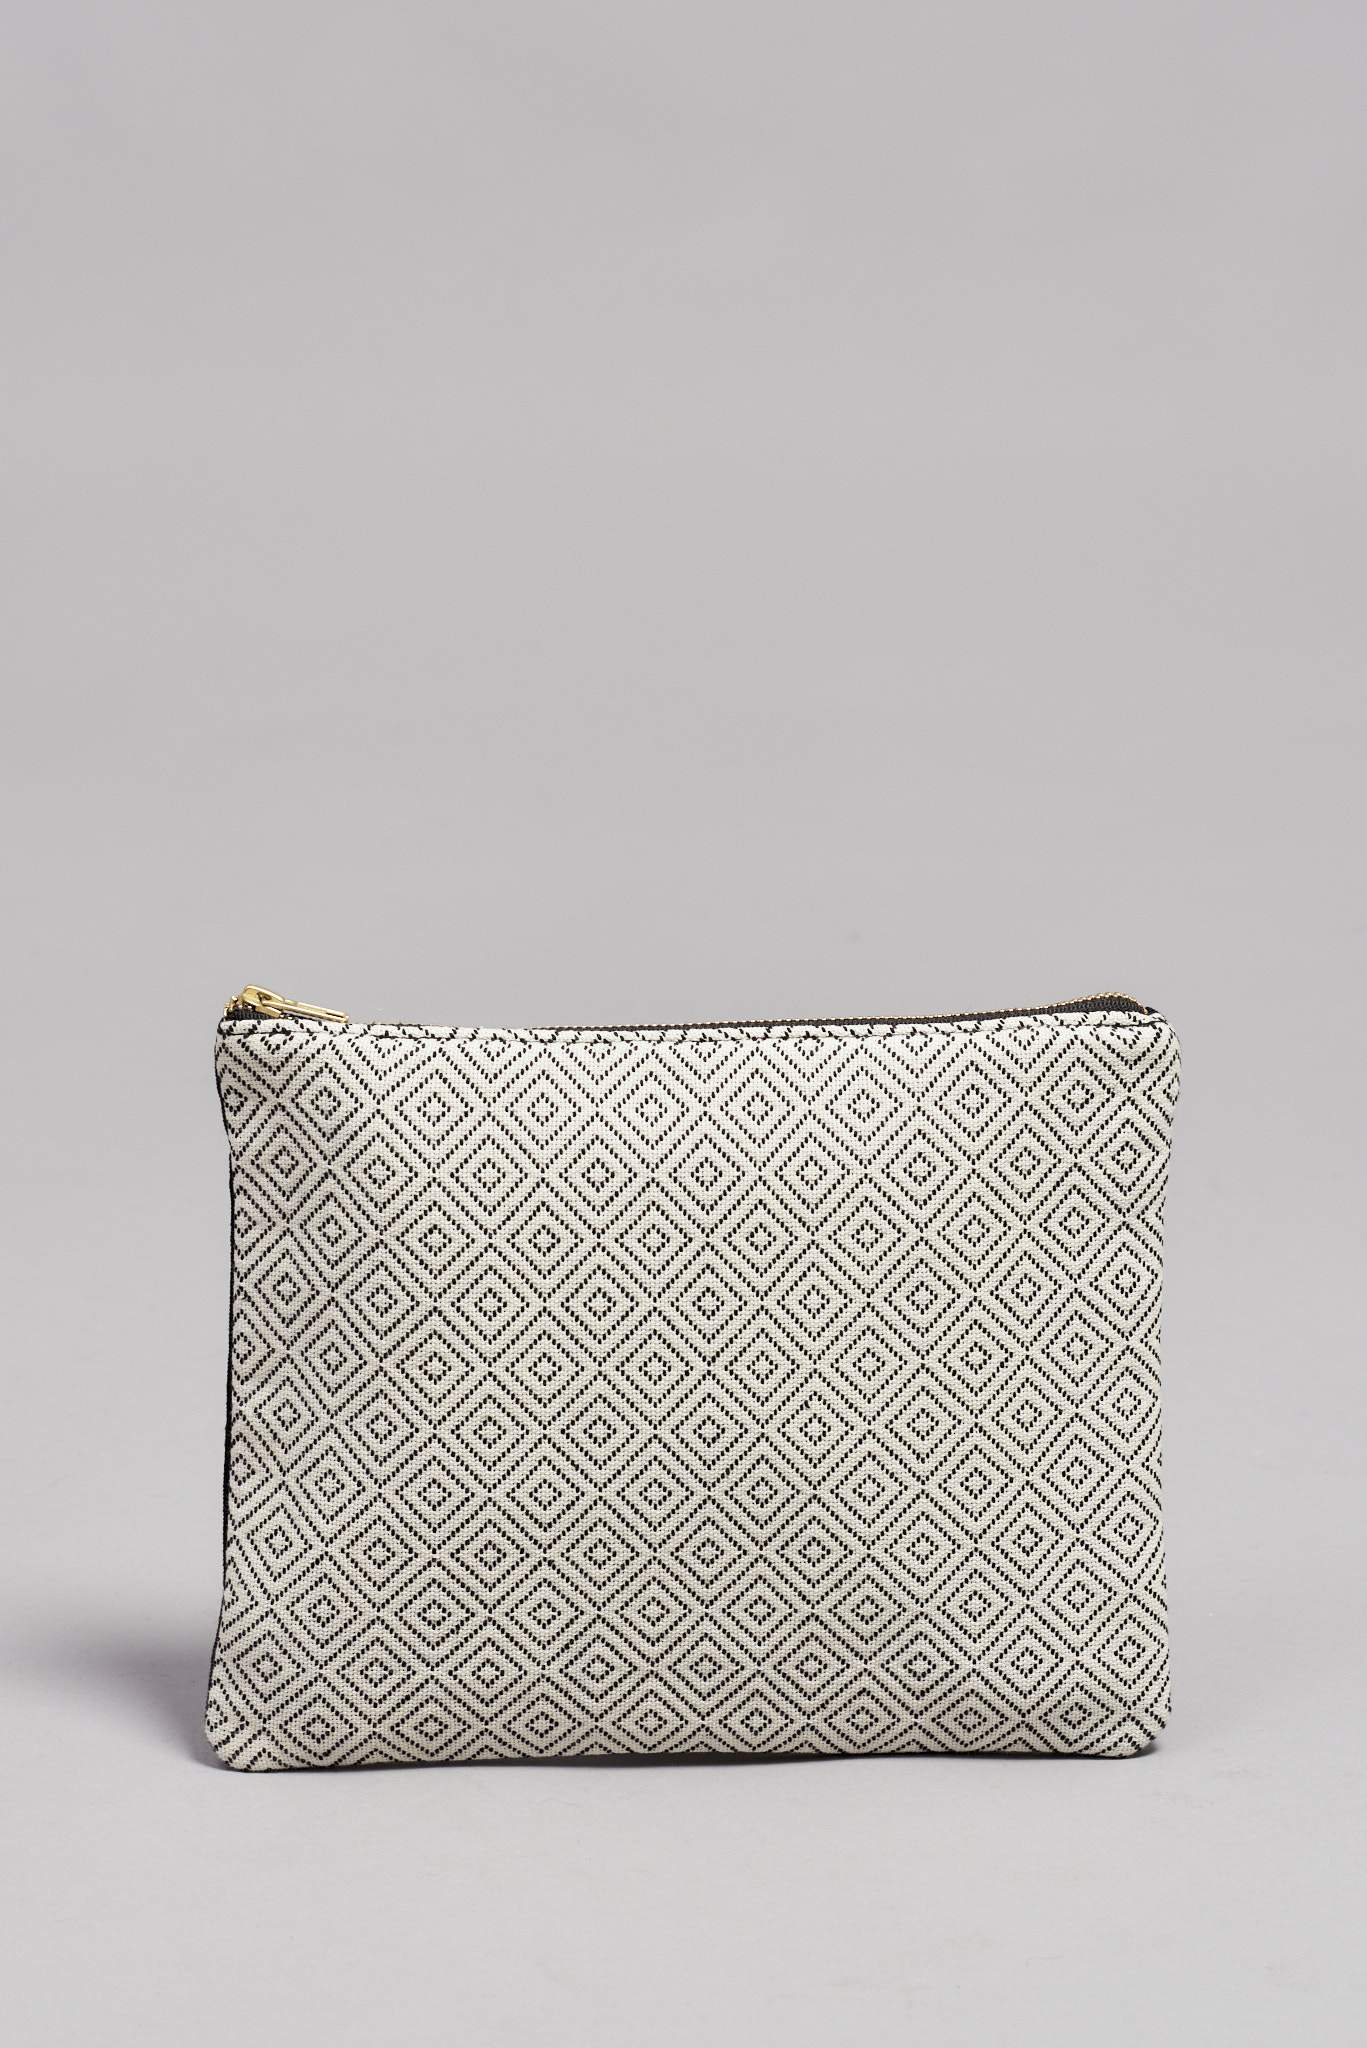 DIAMOND CLUTCH FABIOLA